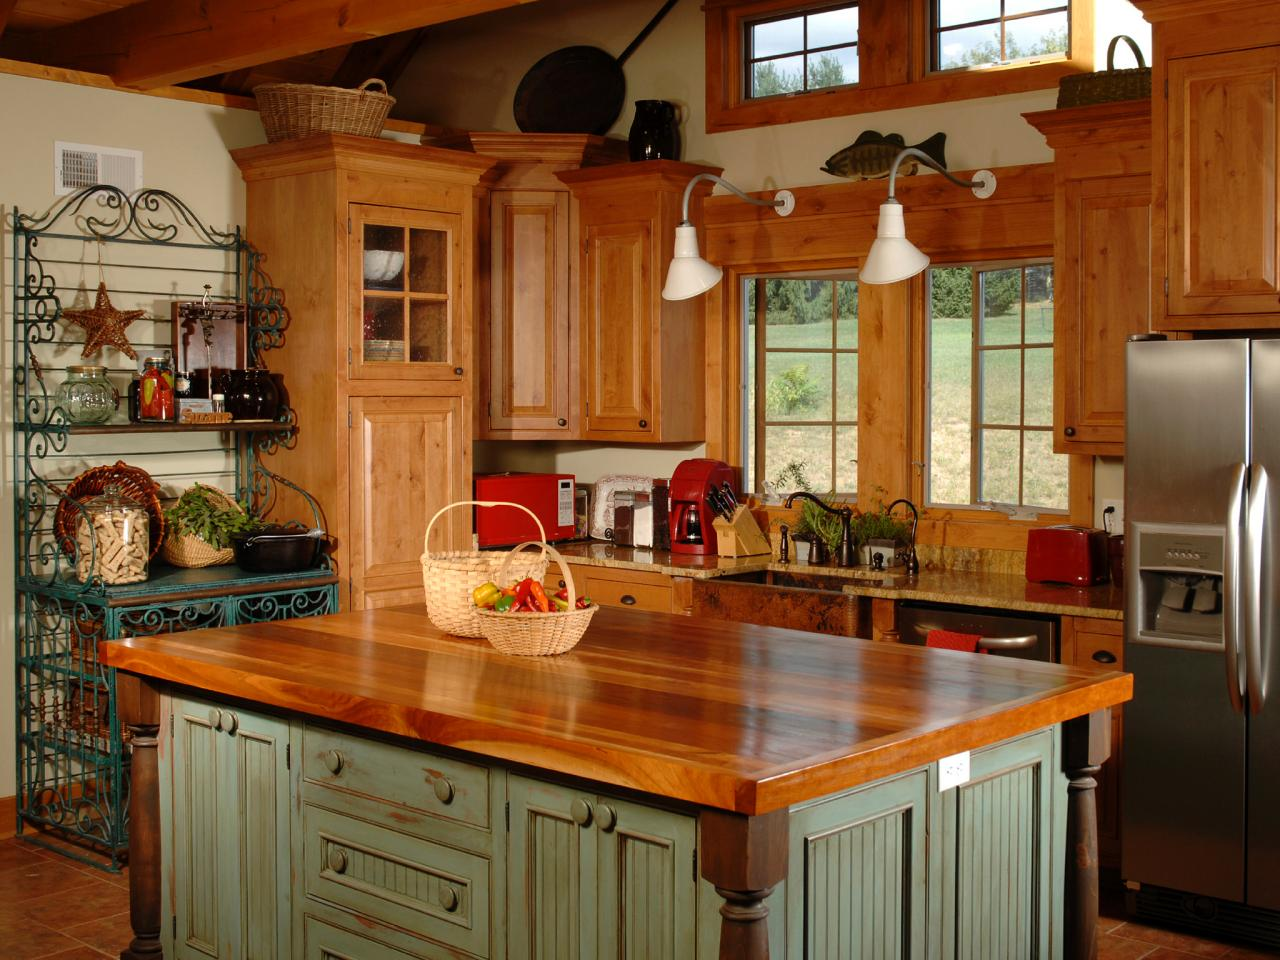 ordinary Pictures Of Country Kitchens With Islands #1: Country Kitchen Islands